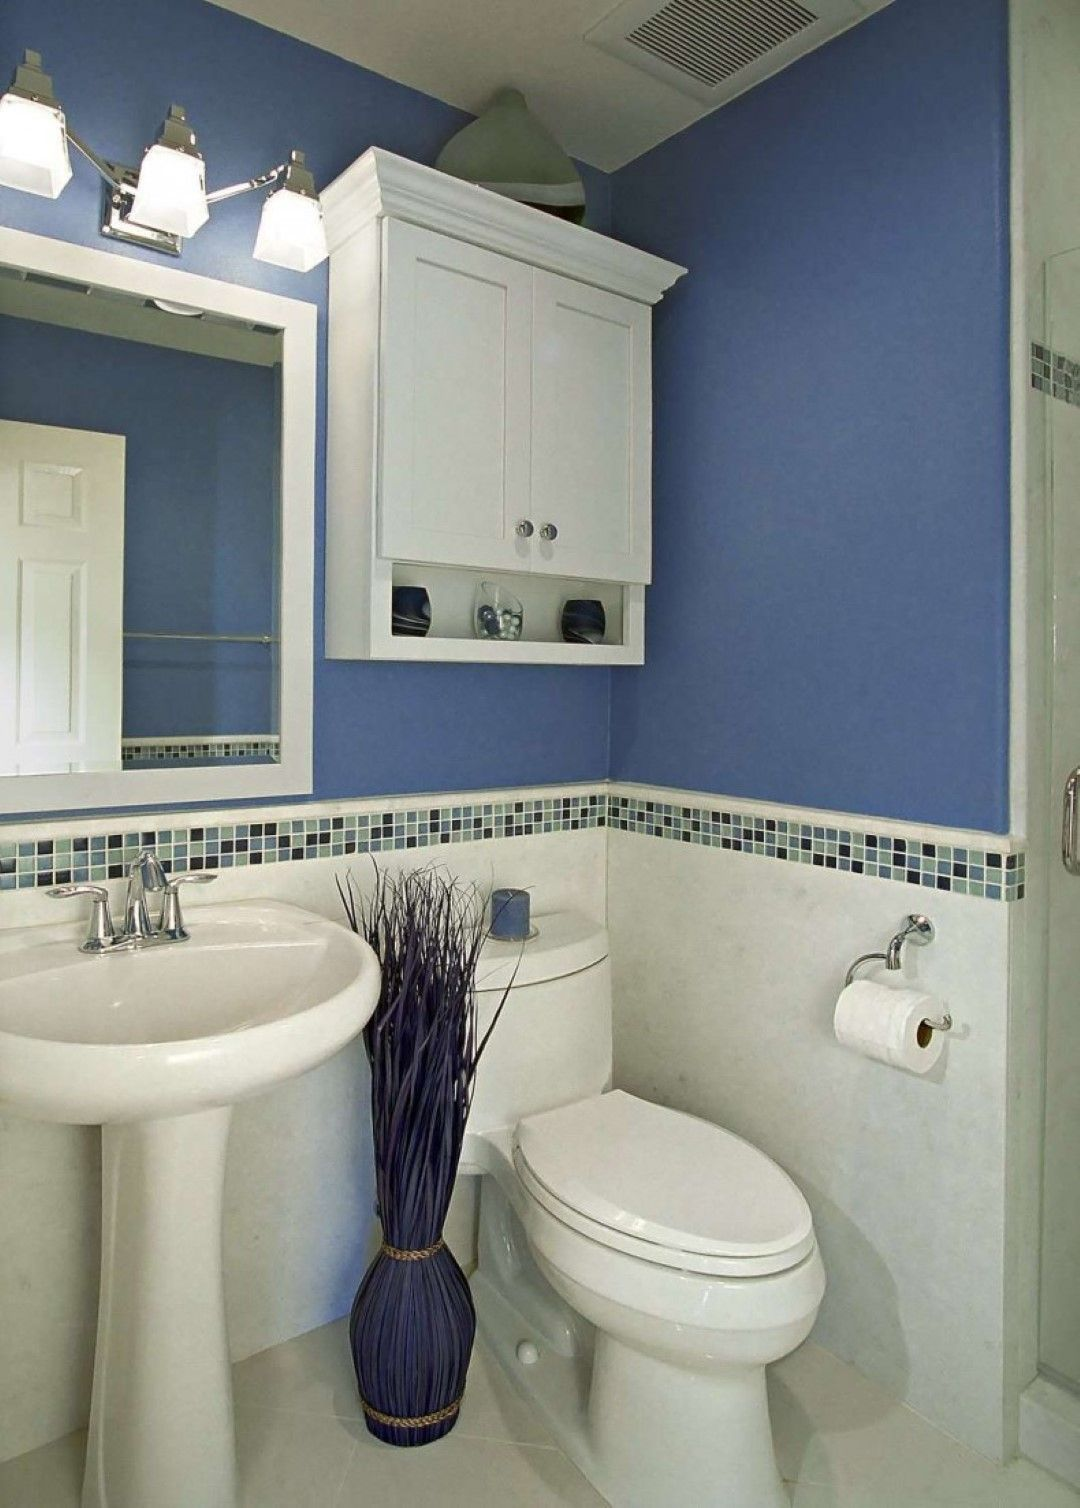 Bathroom mosaic backsplash tile idea feat stylish blue bathroom and pedestal sink with smart - Bathroom decorating ideas blue walls ...